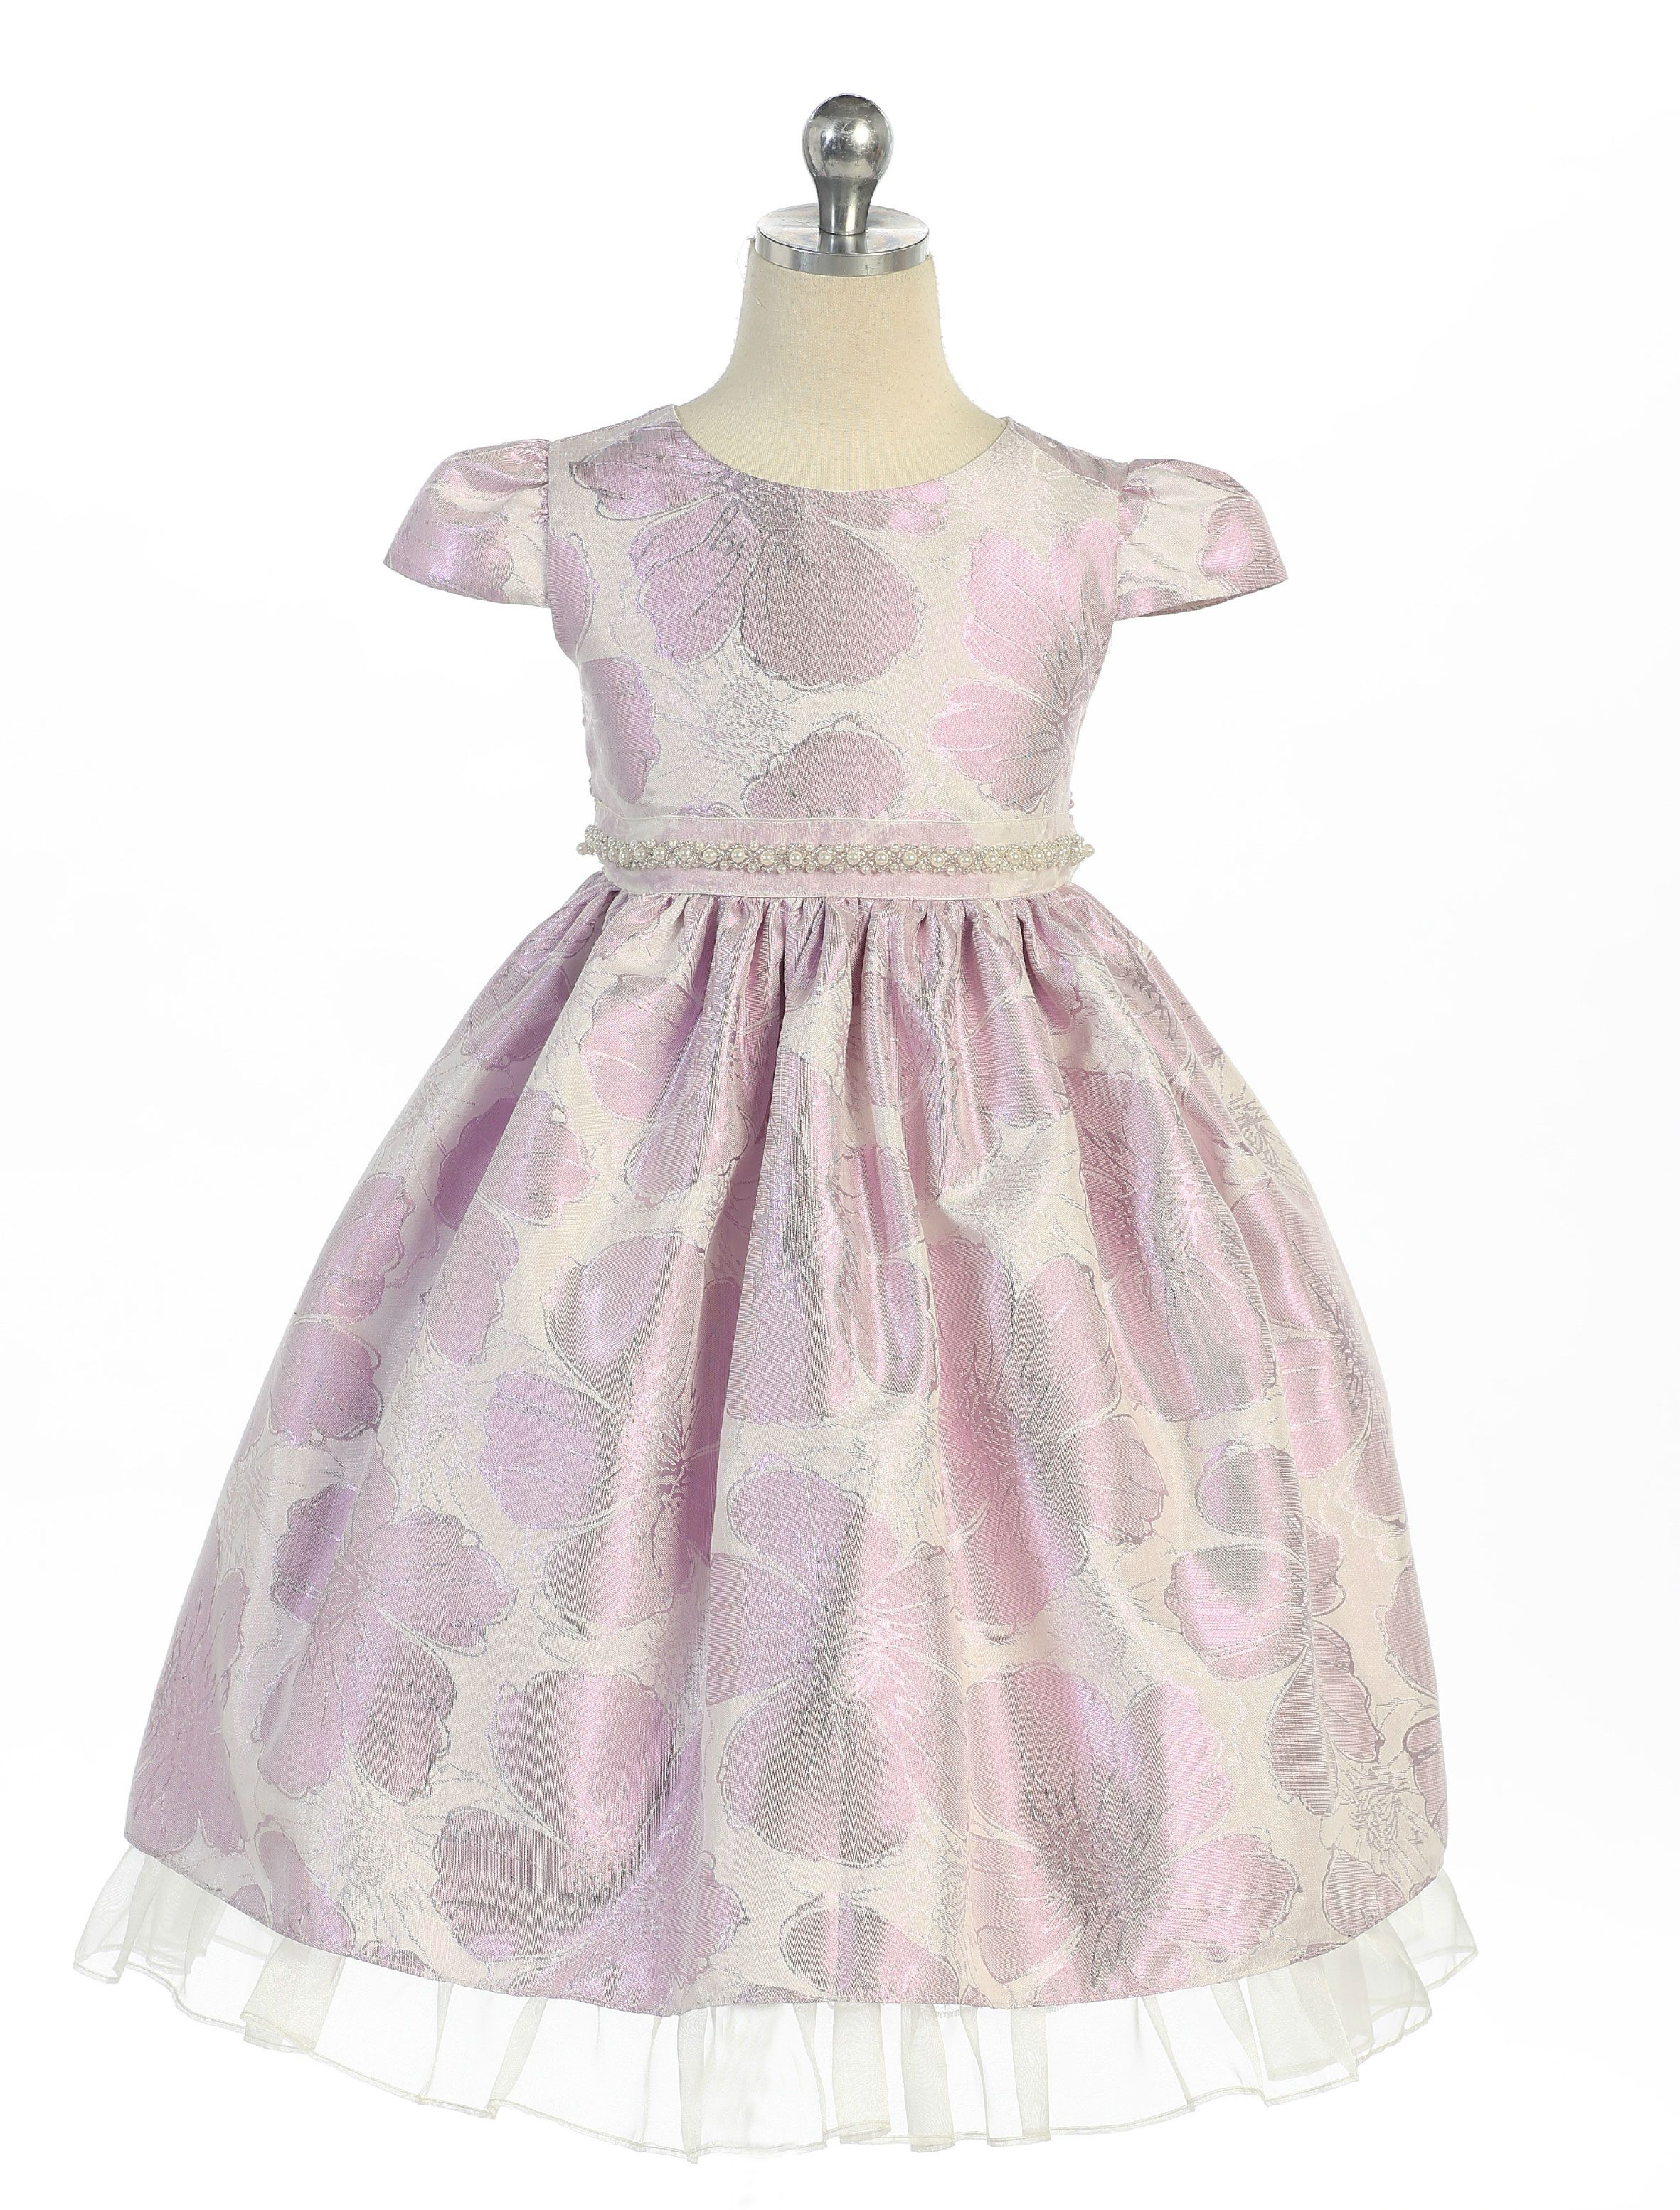 58fcadb768e Girls Dress Style 989 - Metallic Jacquard Dress in Choice of Color We  absolutely love the